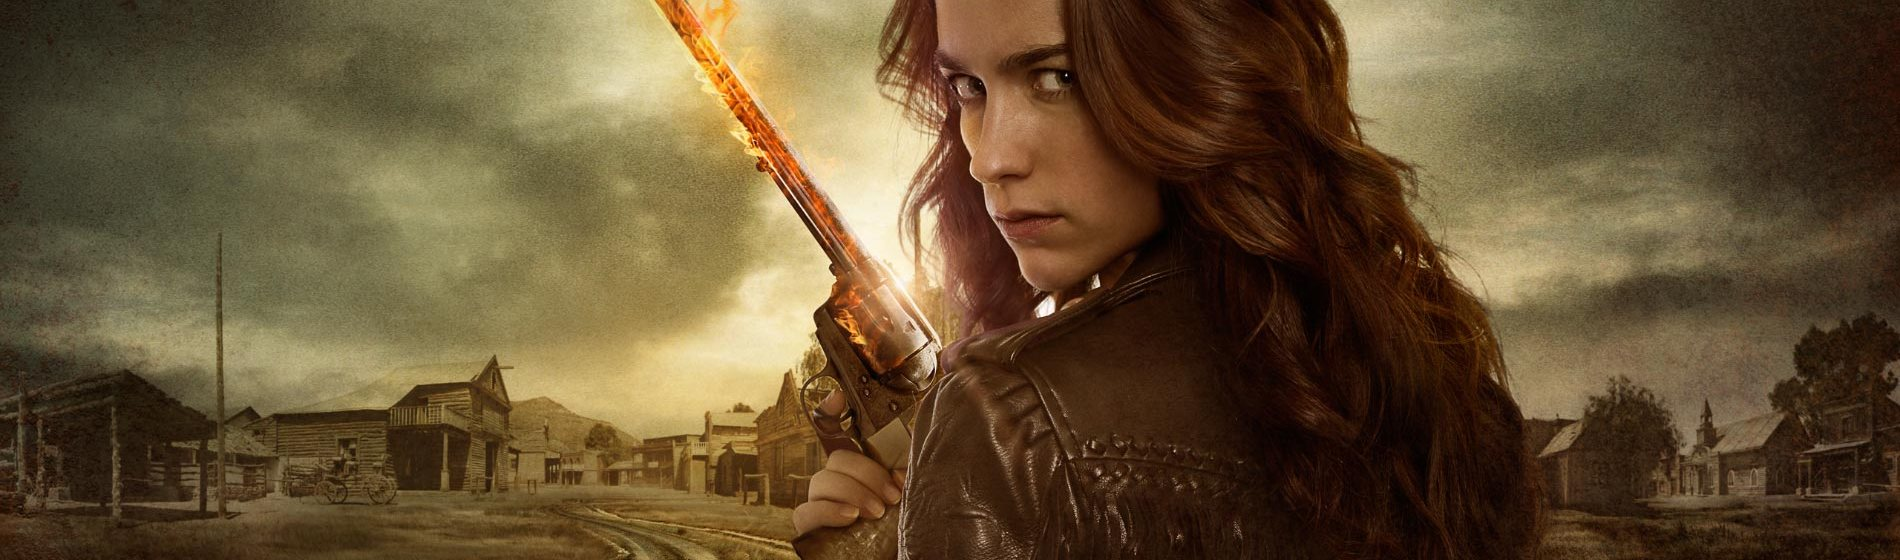 7 Reasons Why Wynonna Earp is Doing Everything Supernatural